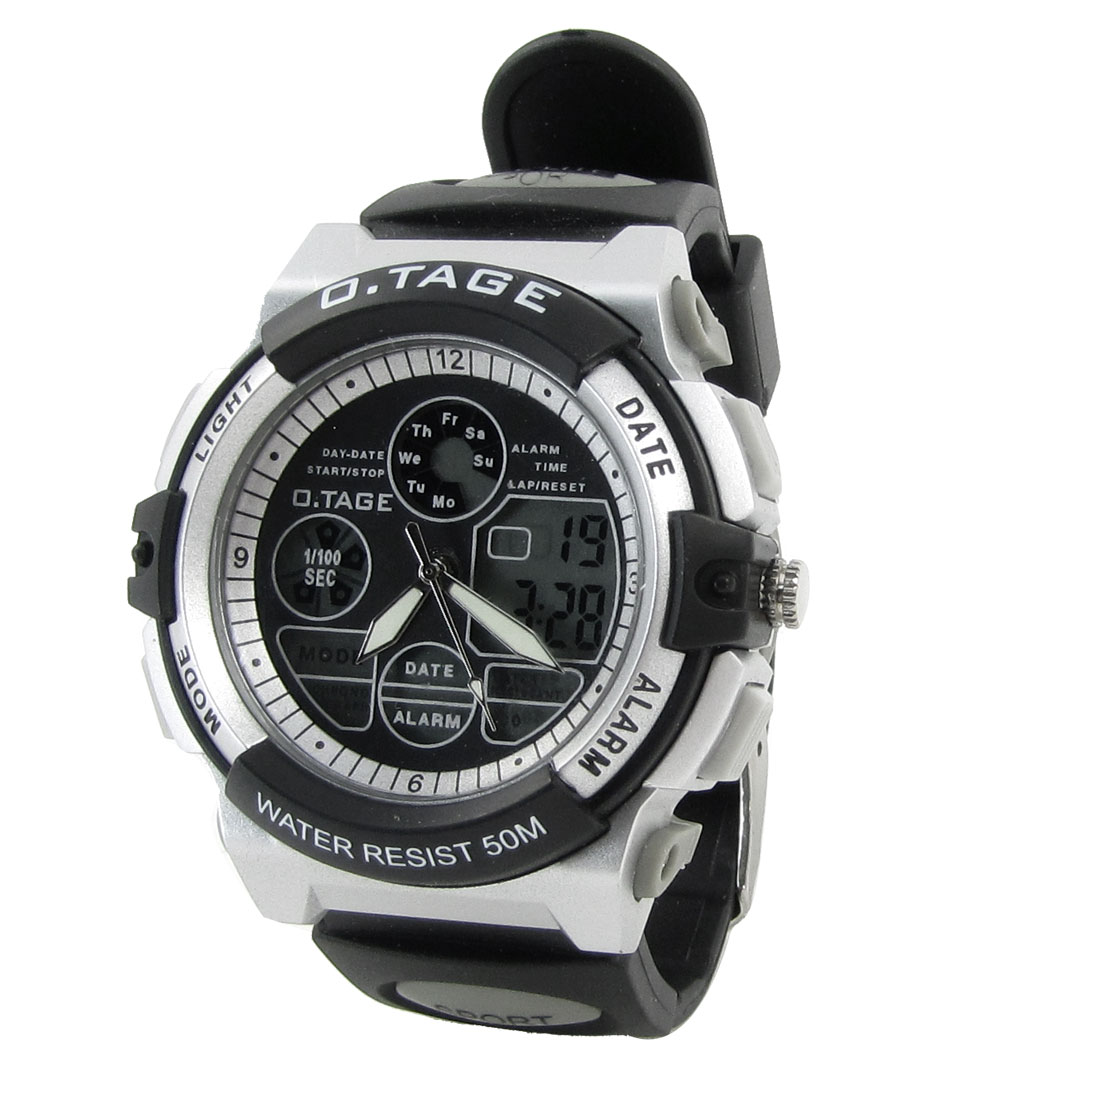 Black Adjusting Band Stopwatch Alarm Digital Sports Watch Wristwatch for Man